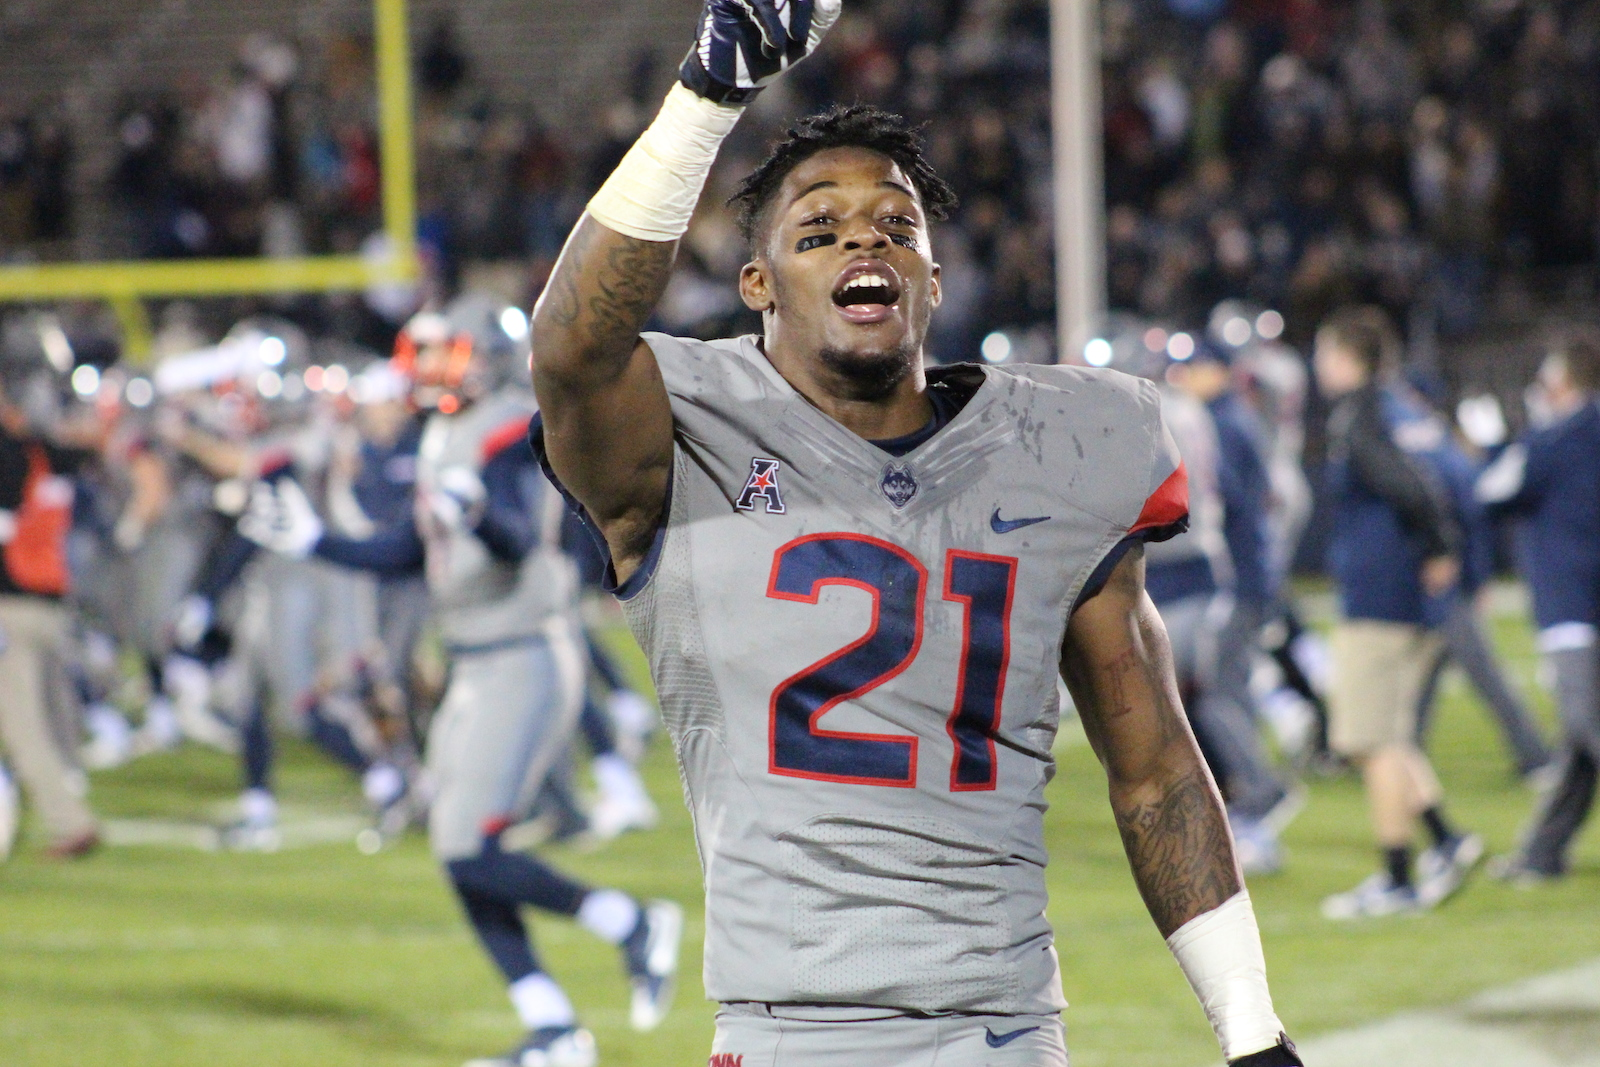 Cb Jamar Summers Is Continuing Tradition At Uconn This Produk Ukm Bumn Susu Kambing Etawa Instant Sealed The Win With His 7th Interception Of Season Photo Credit